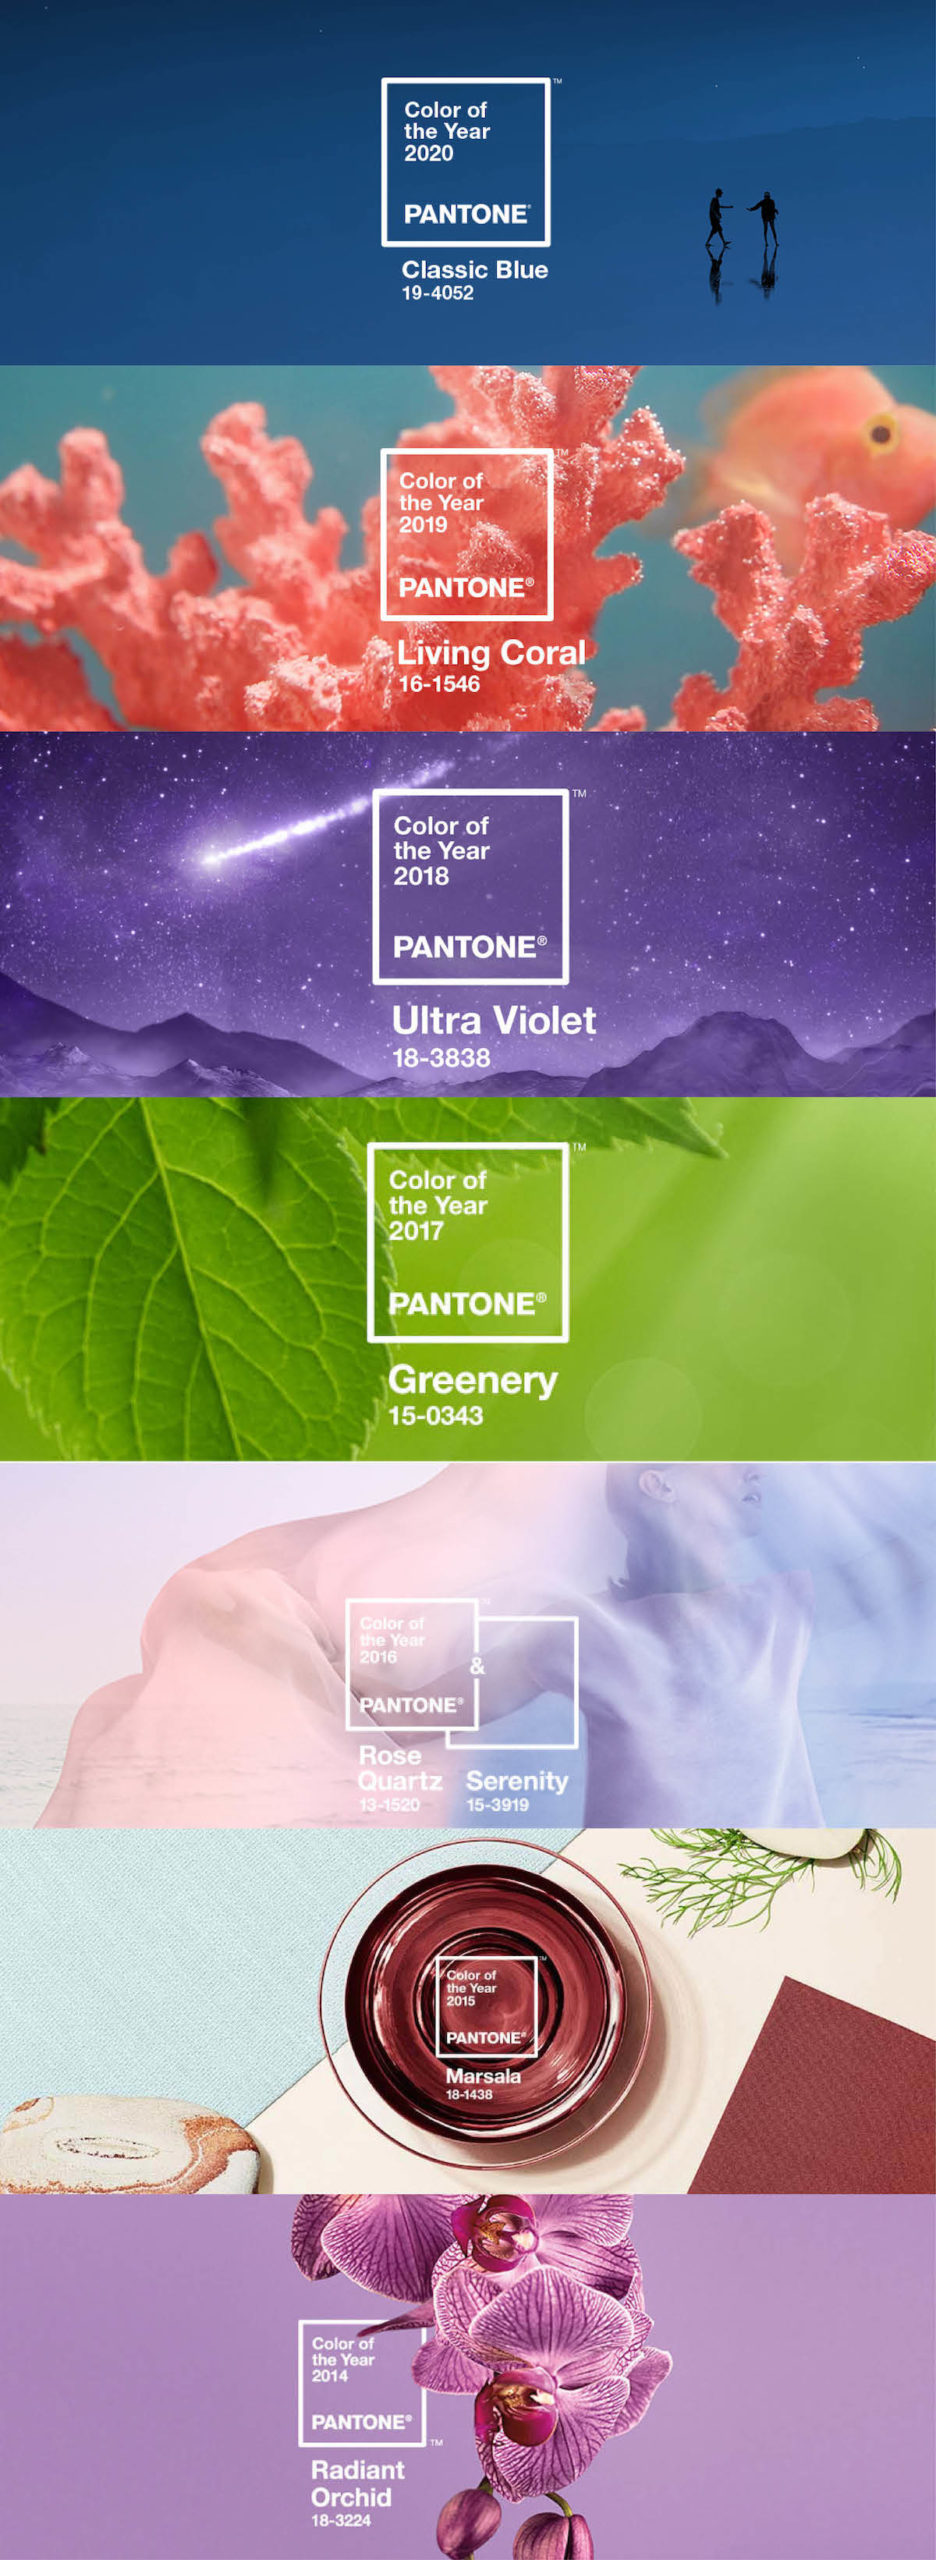 Pantone Color of the Year 2014 - 2020